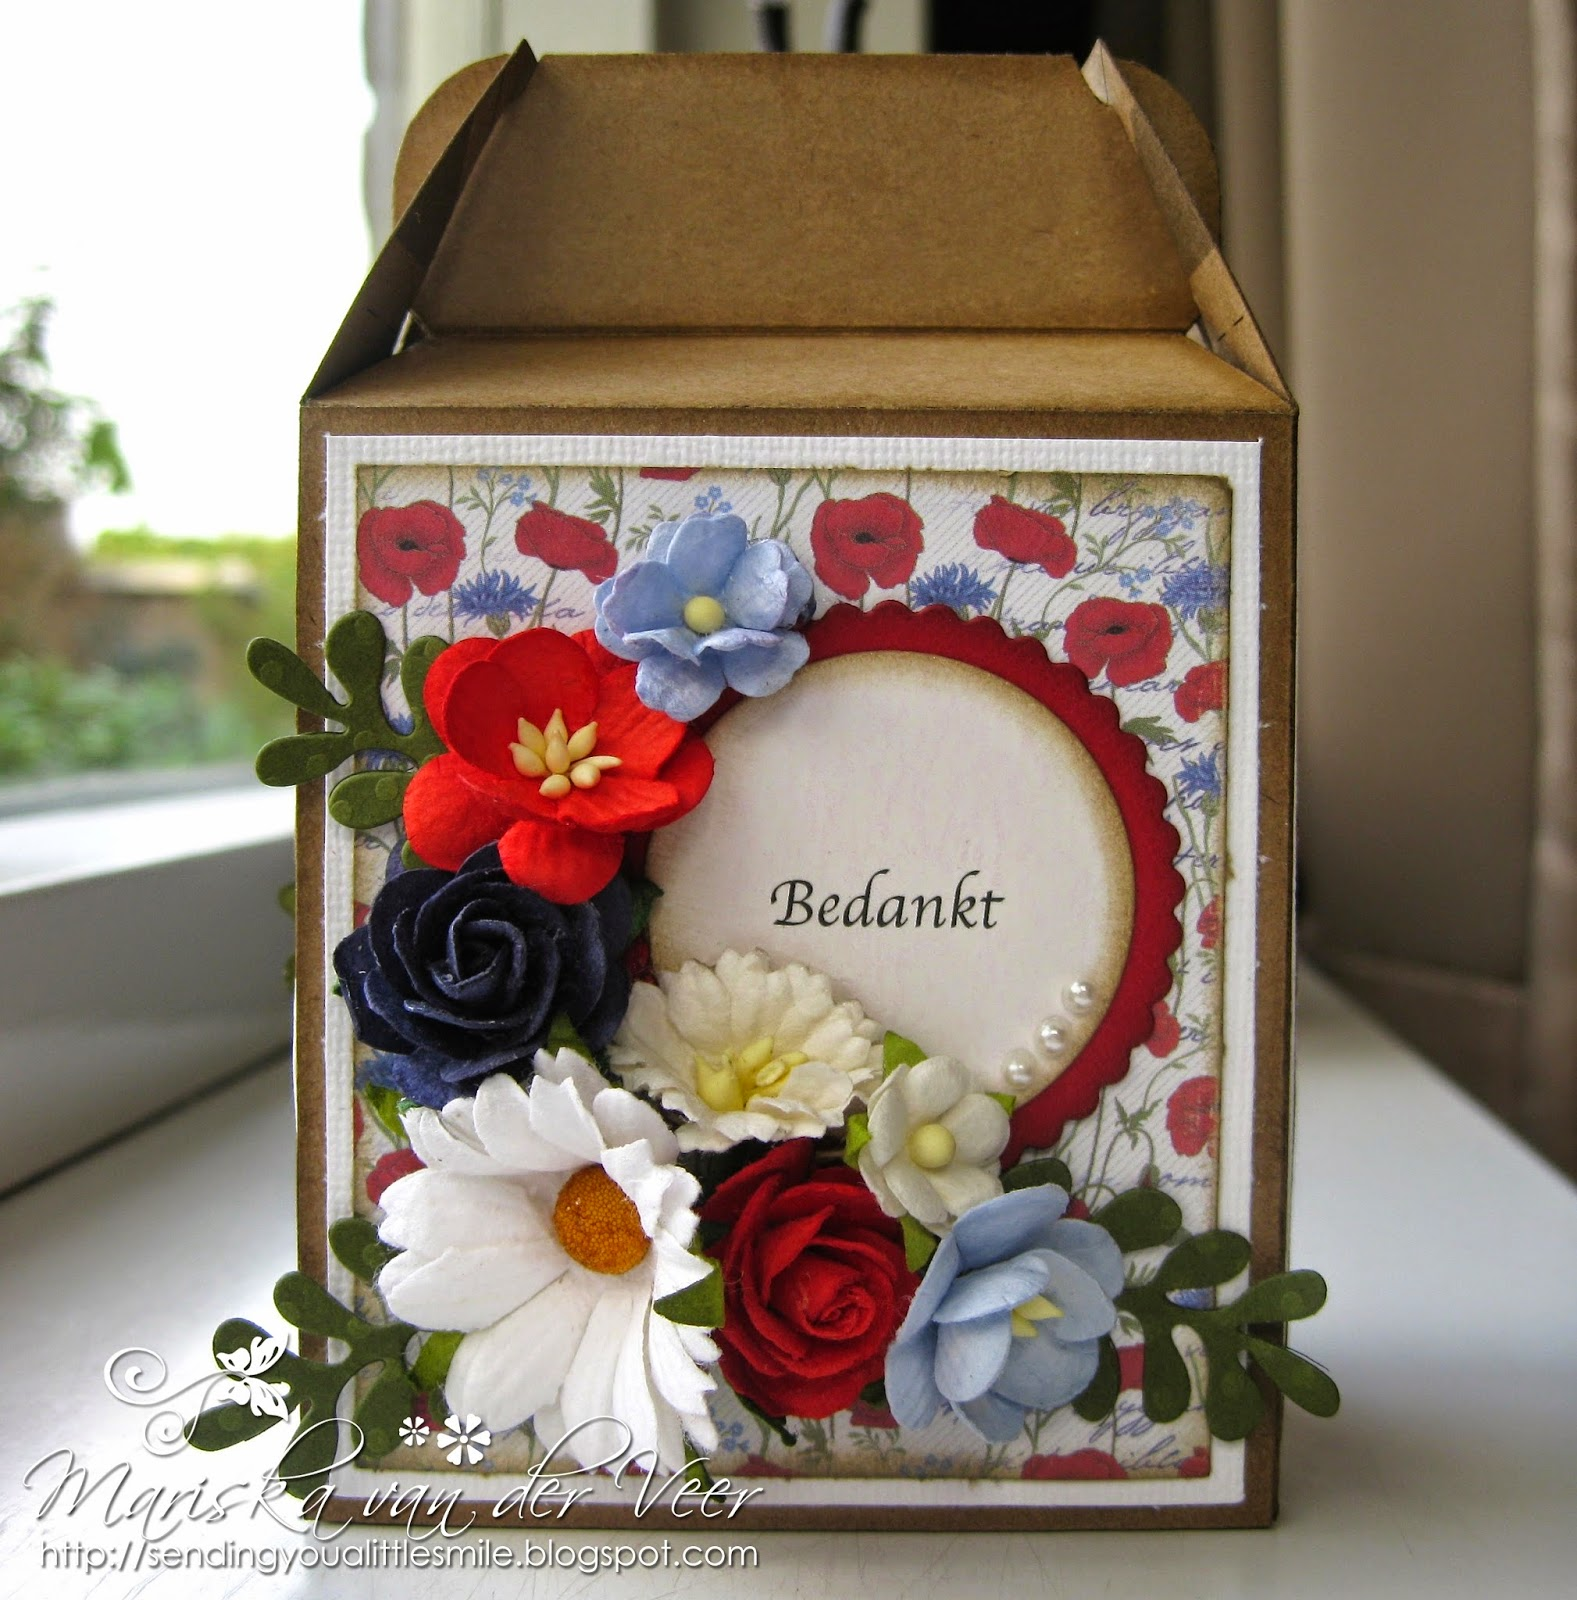 Wild Orchid Crafts: Little thank you gift